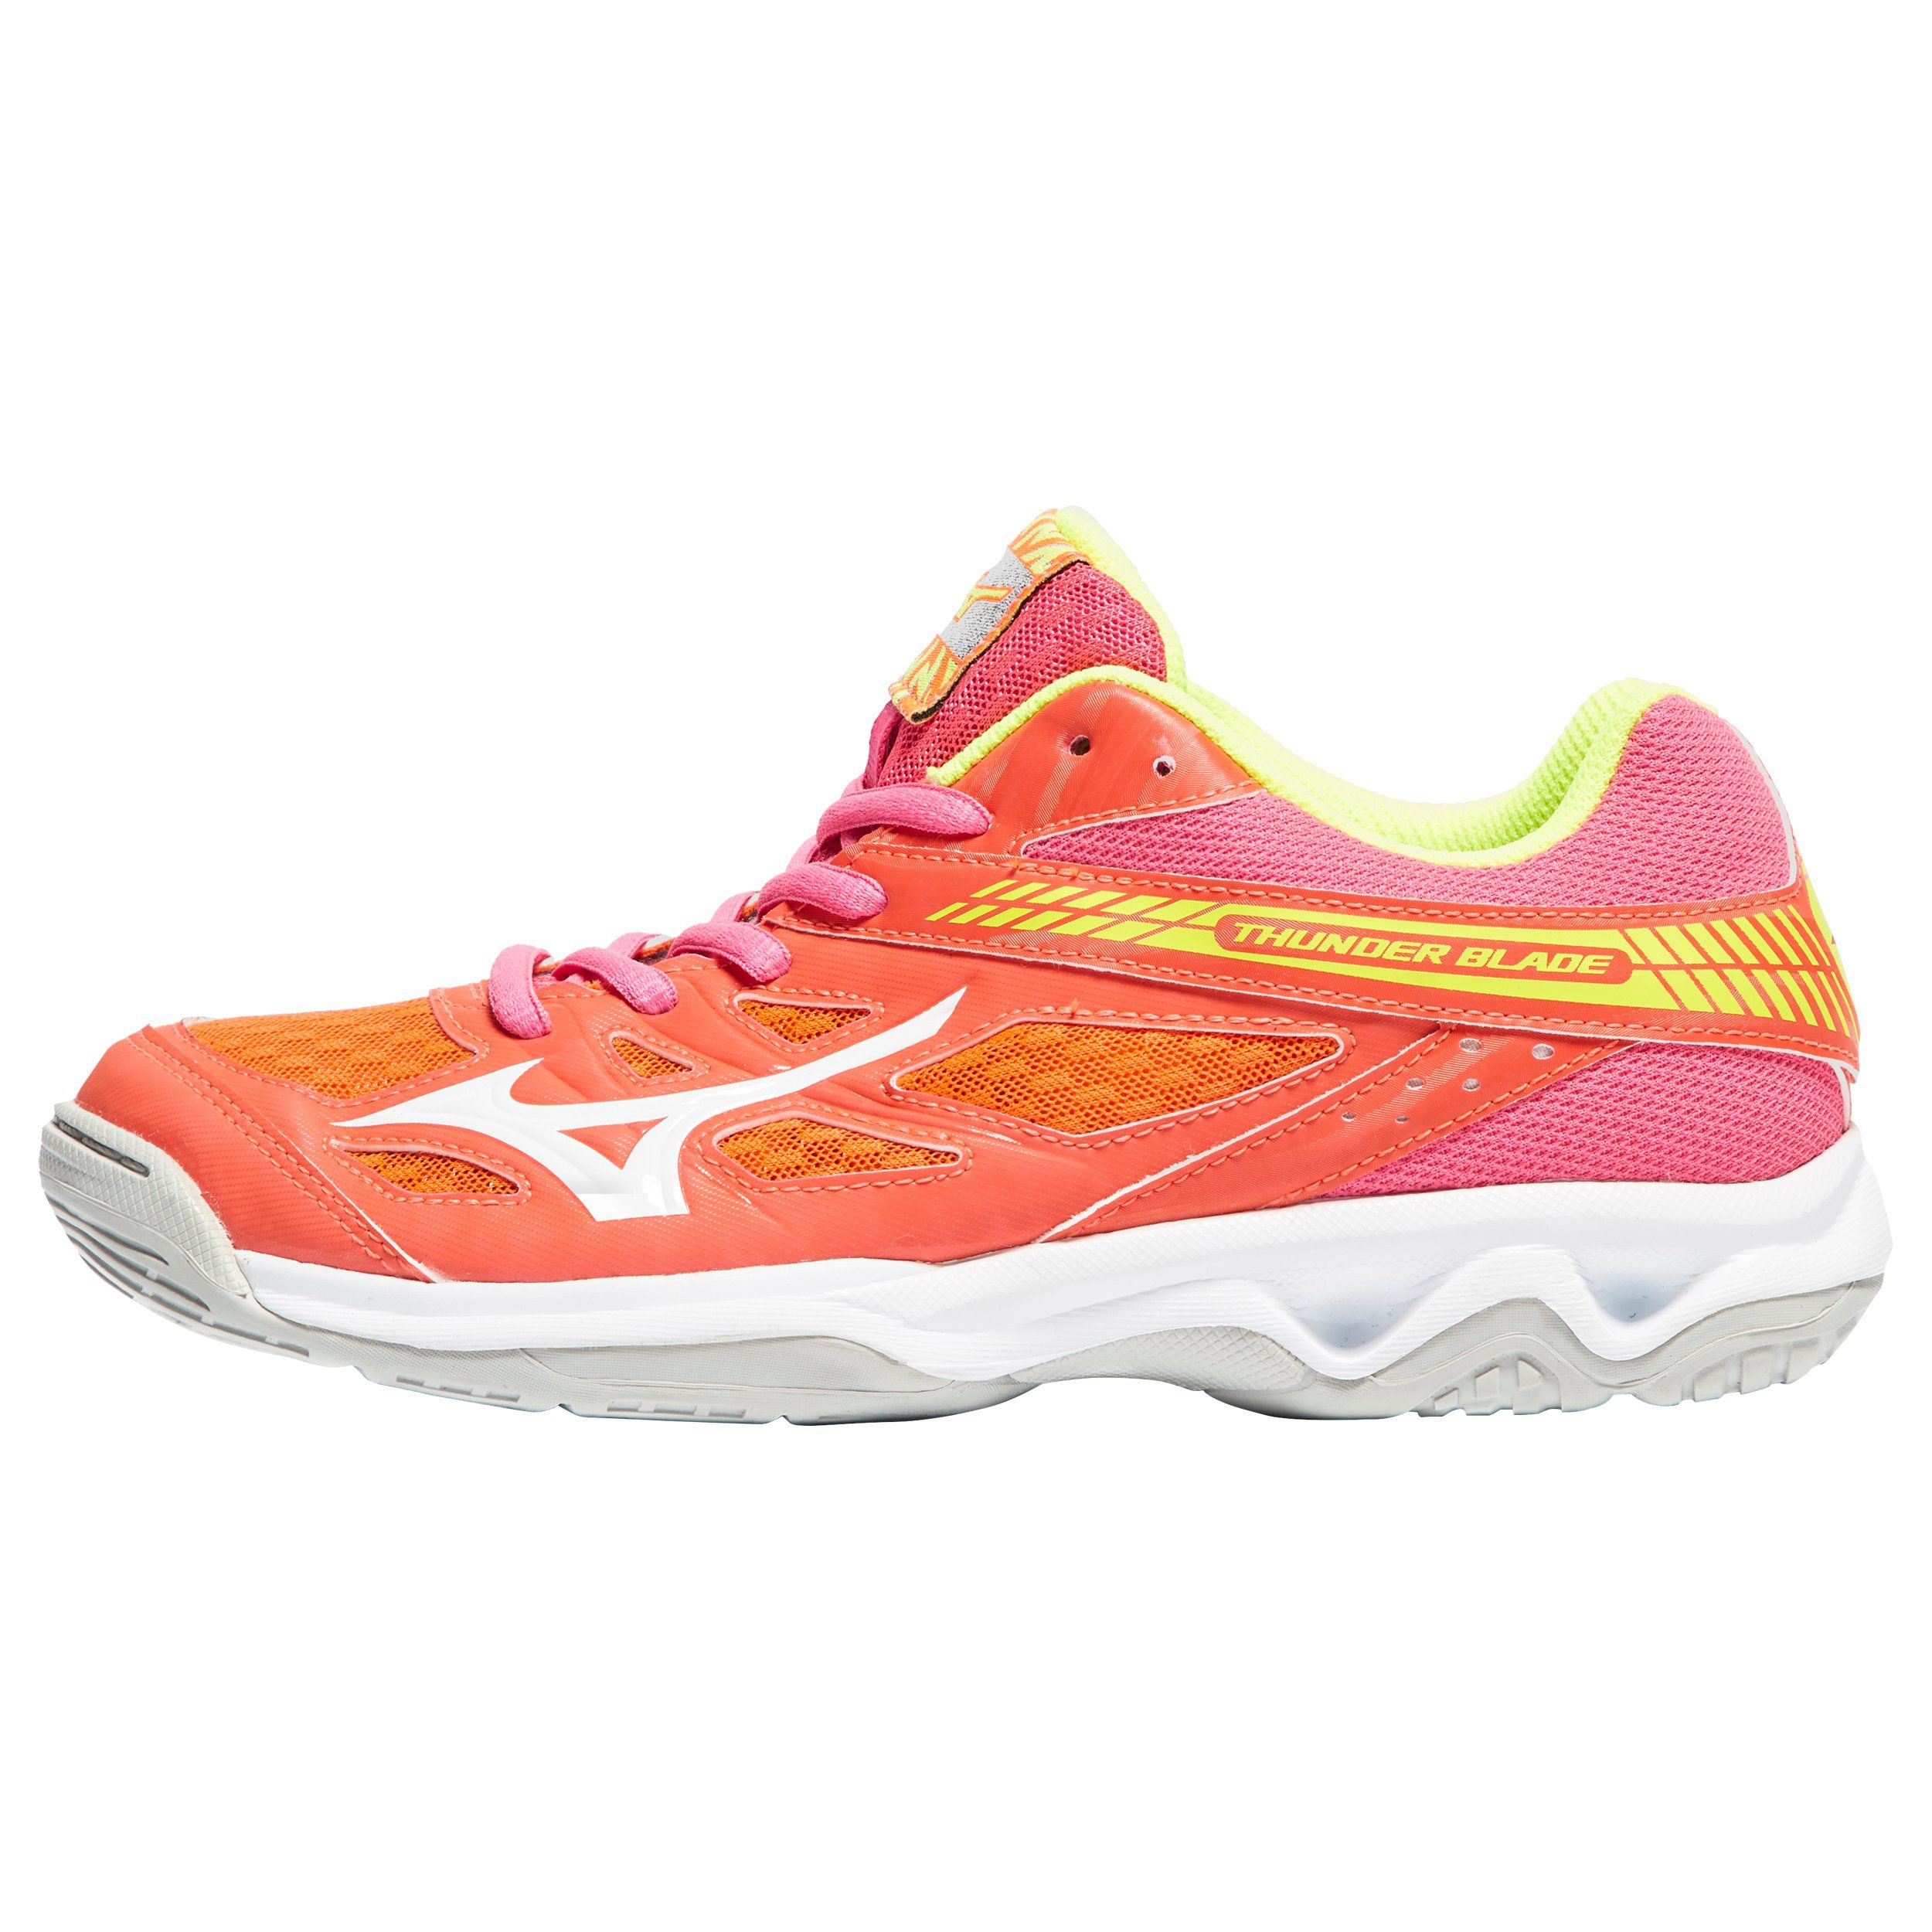 Mizuno Thunder Blade Women's Court Shoes